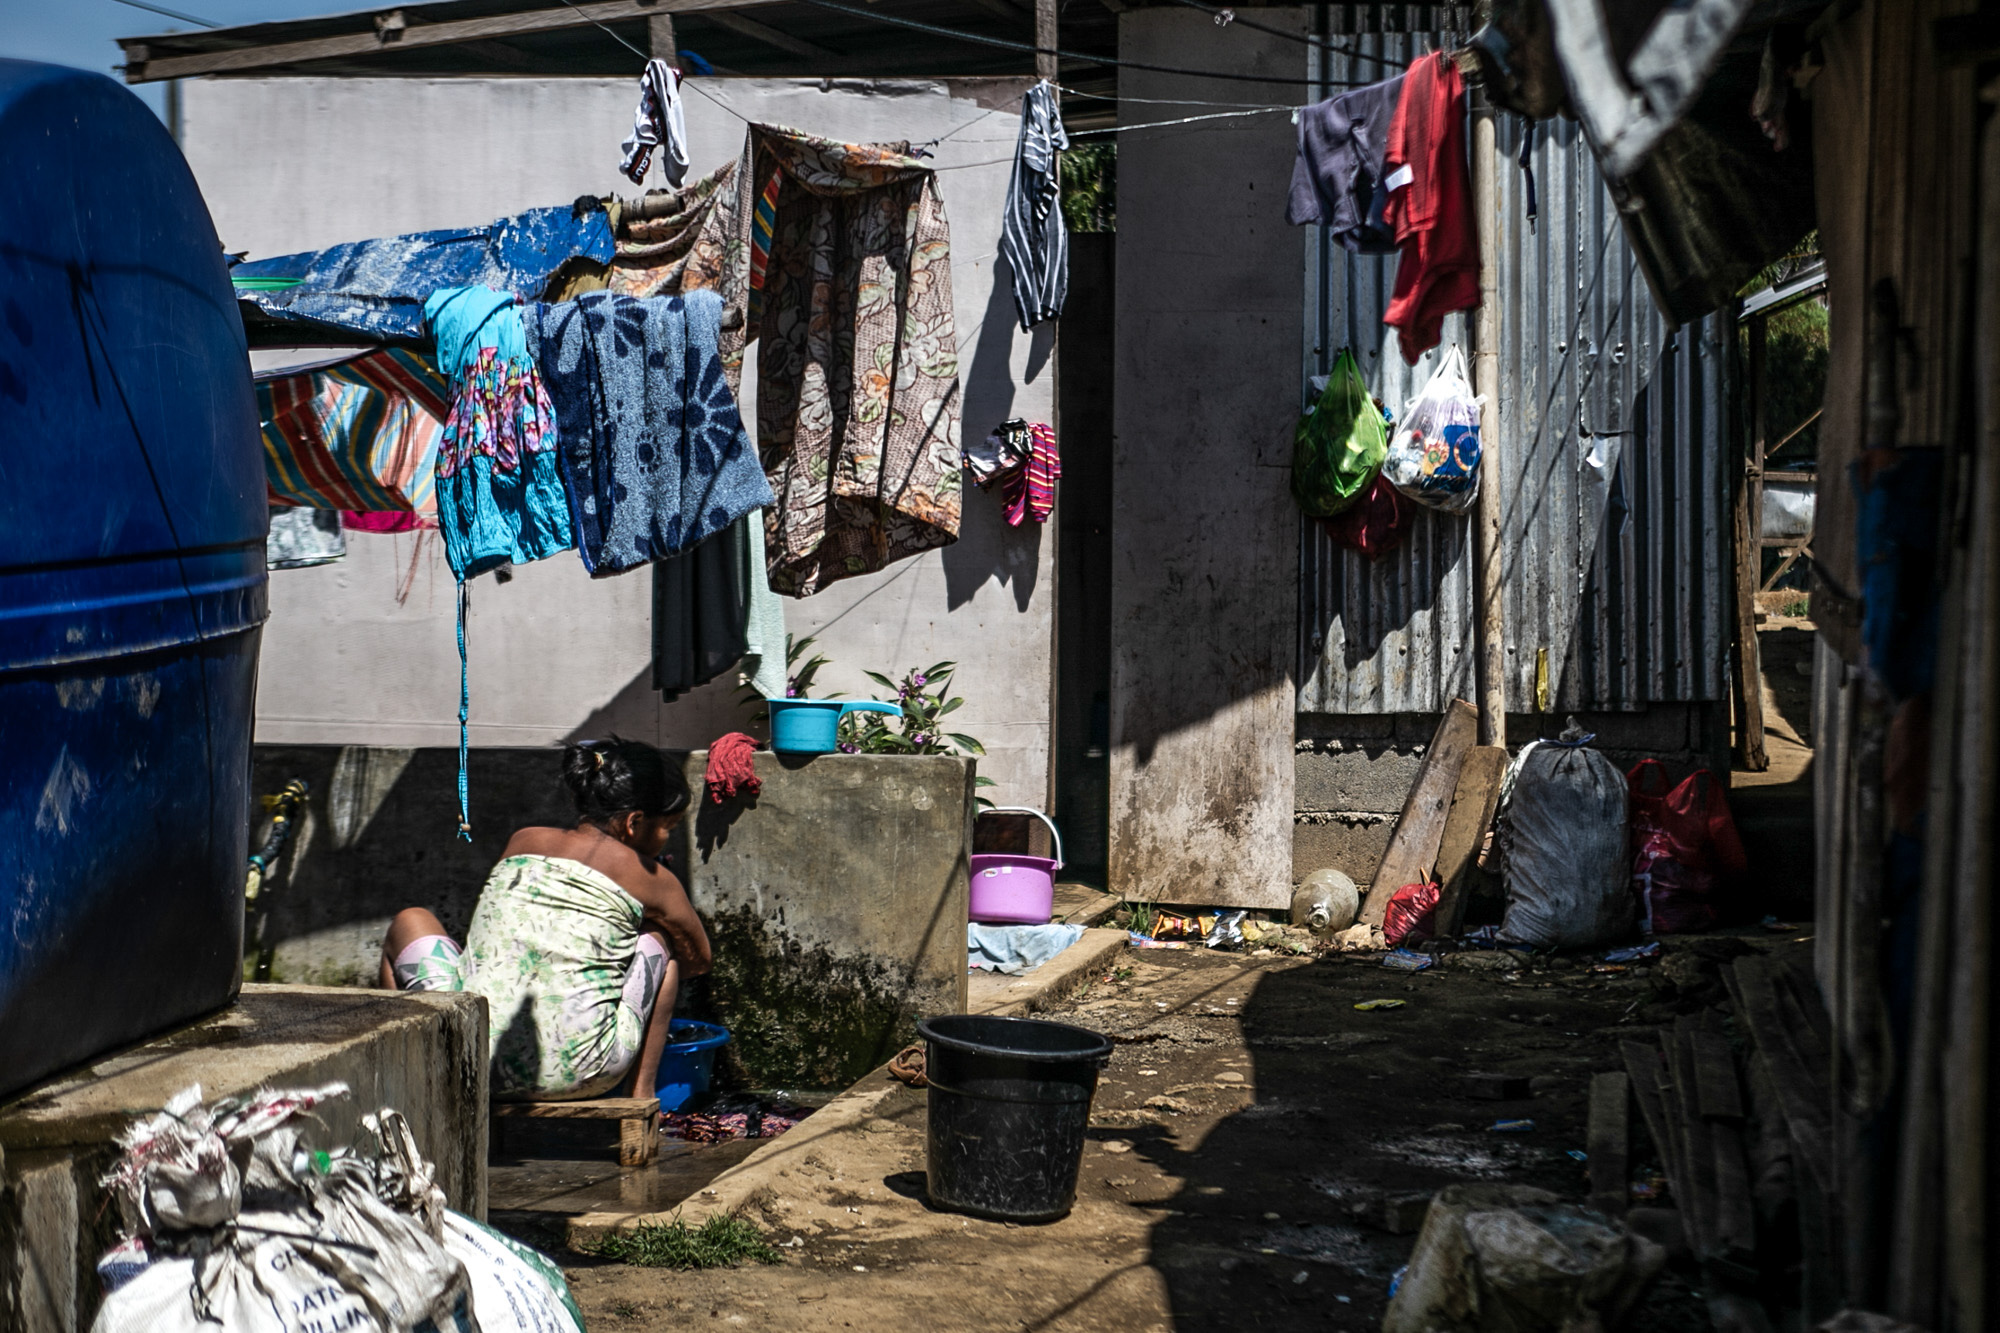 A woman does her laundry in an exposed area near the bathroom stalls inside the evacuation center in Saguiaran, Lanao del Sur. Women IDPs are at risk of gender-based violence because toilets and bath areas are not gender-segregated.